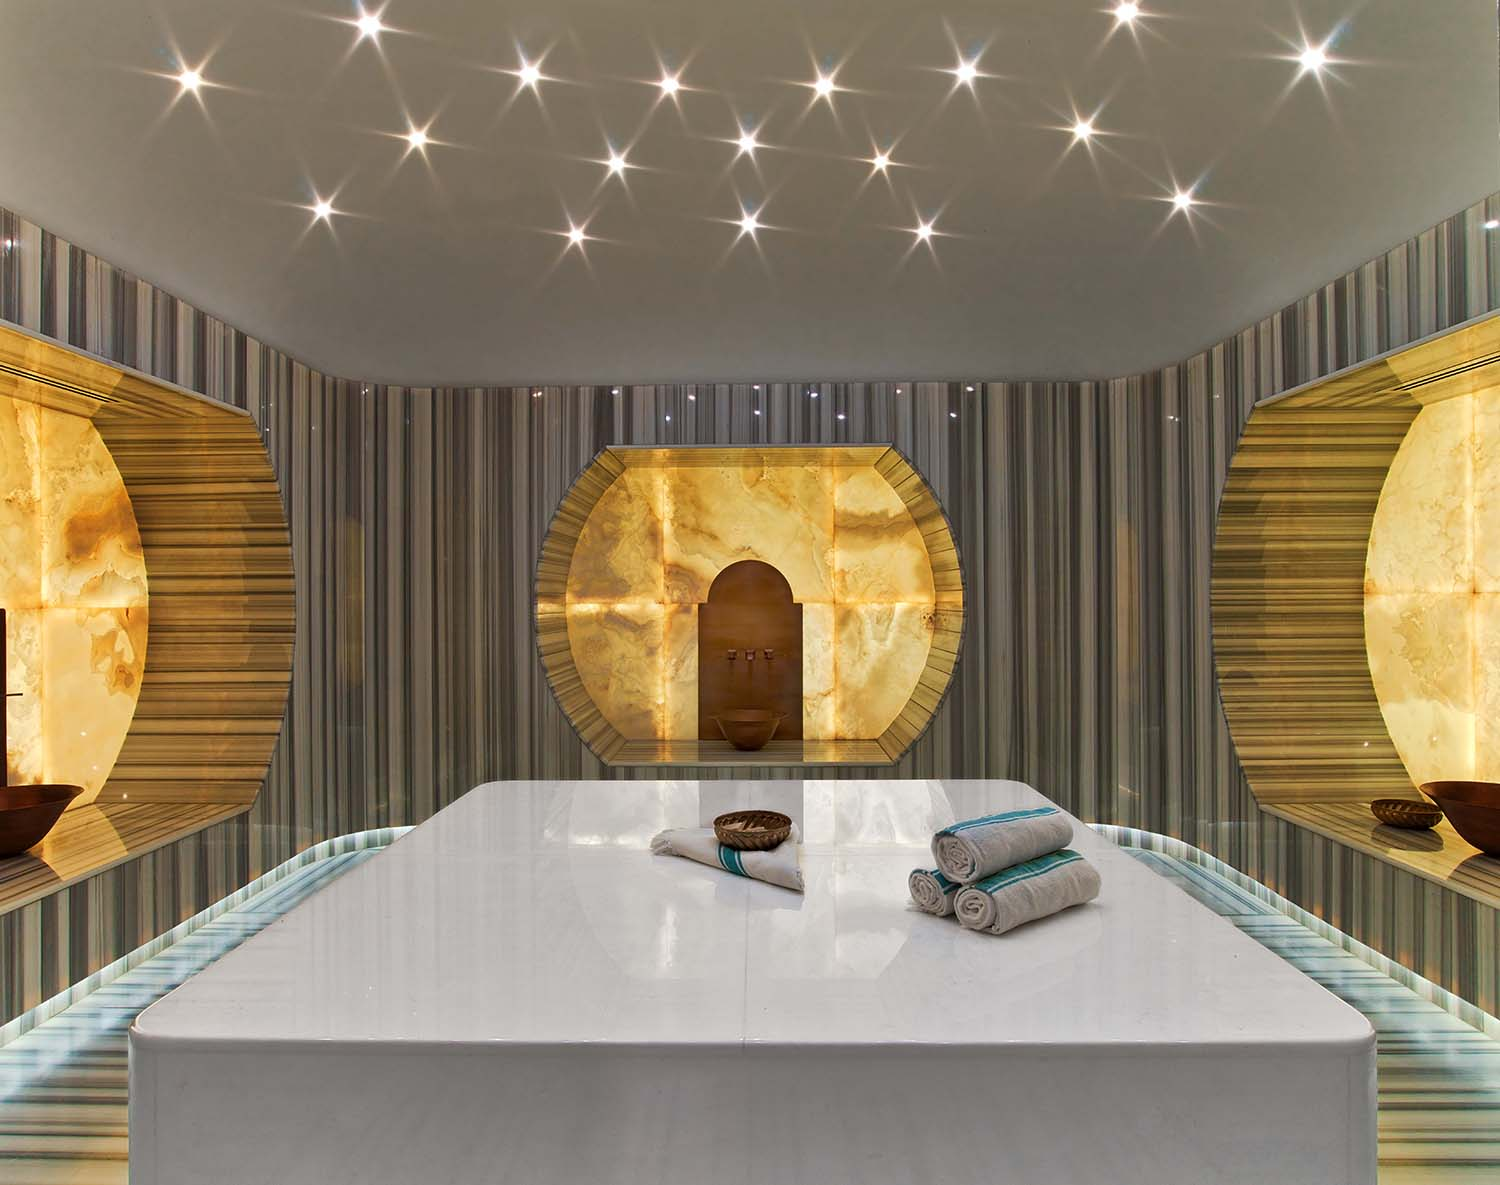 Raffles Istanbul has rejuvenated the ancient hammam tradition and is now offering experiences for the entire family to enjoy.